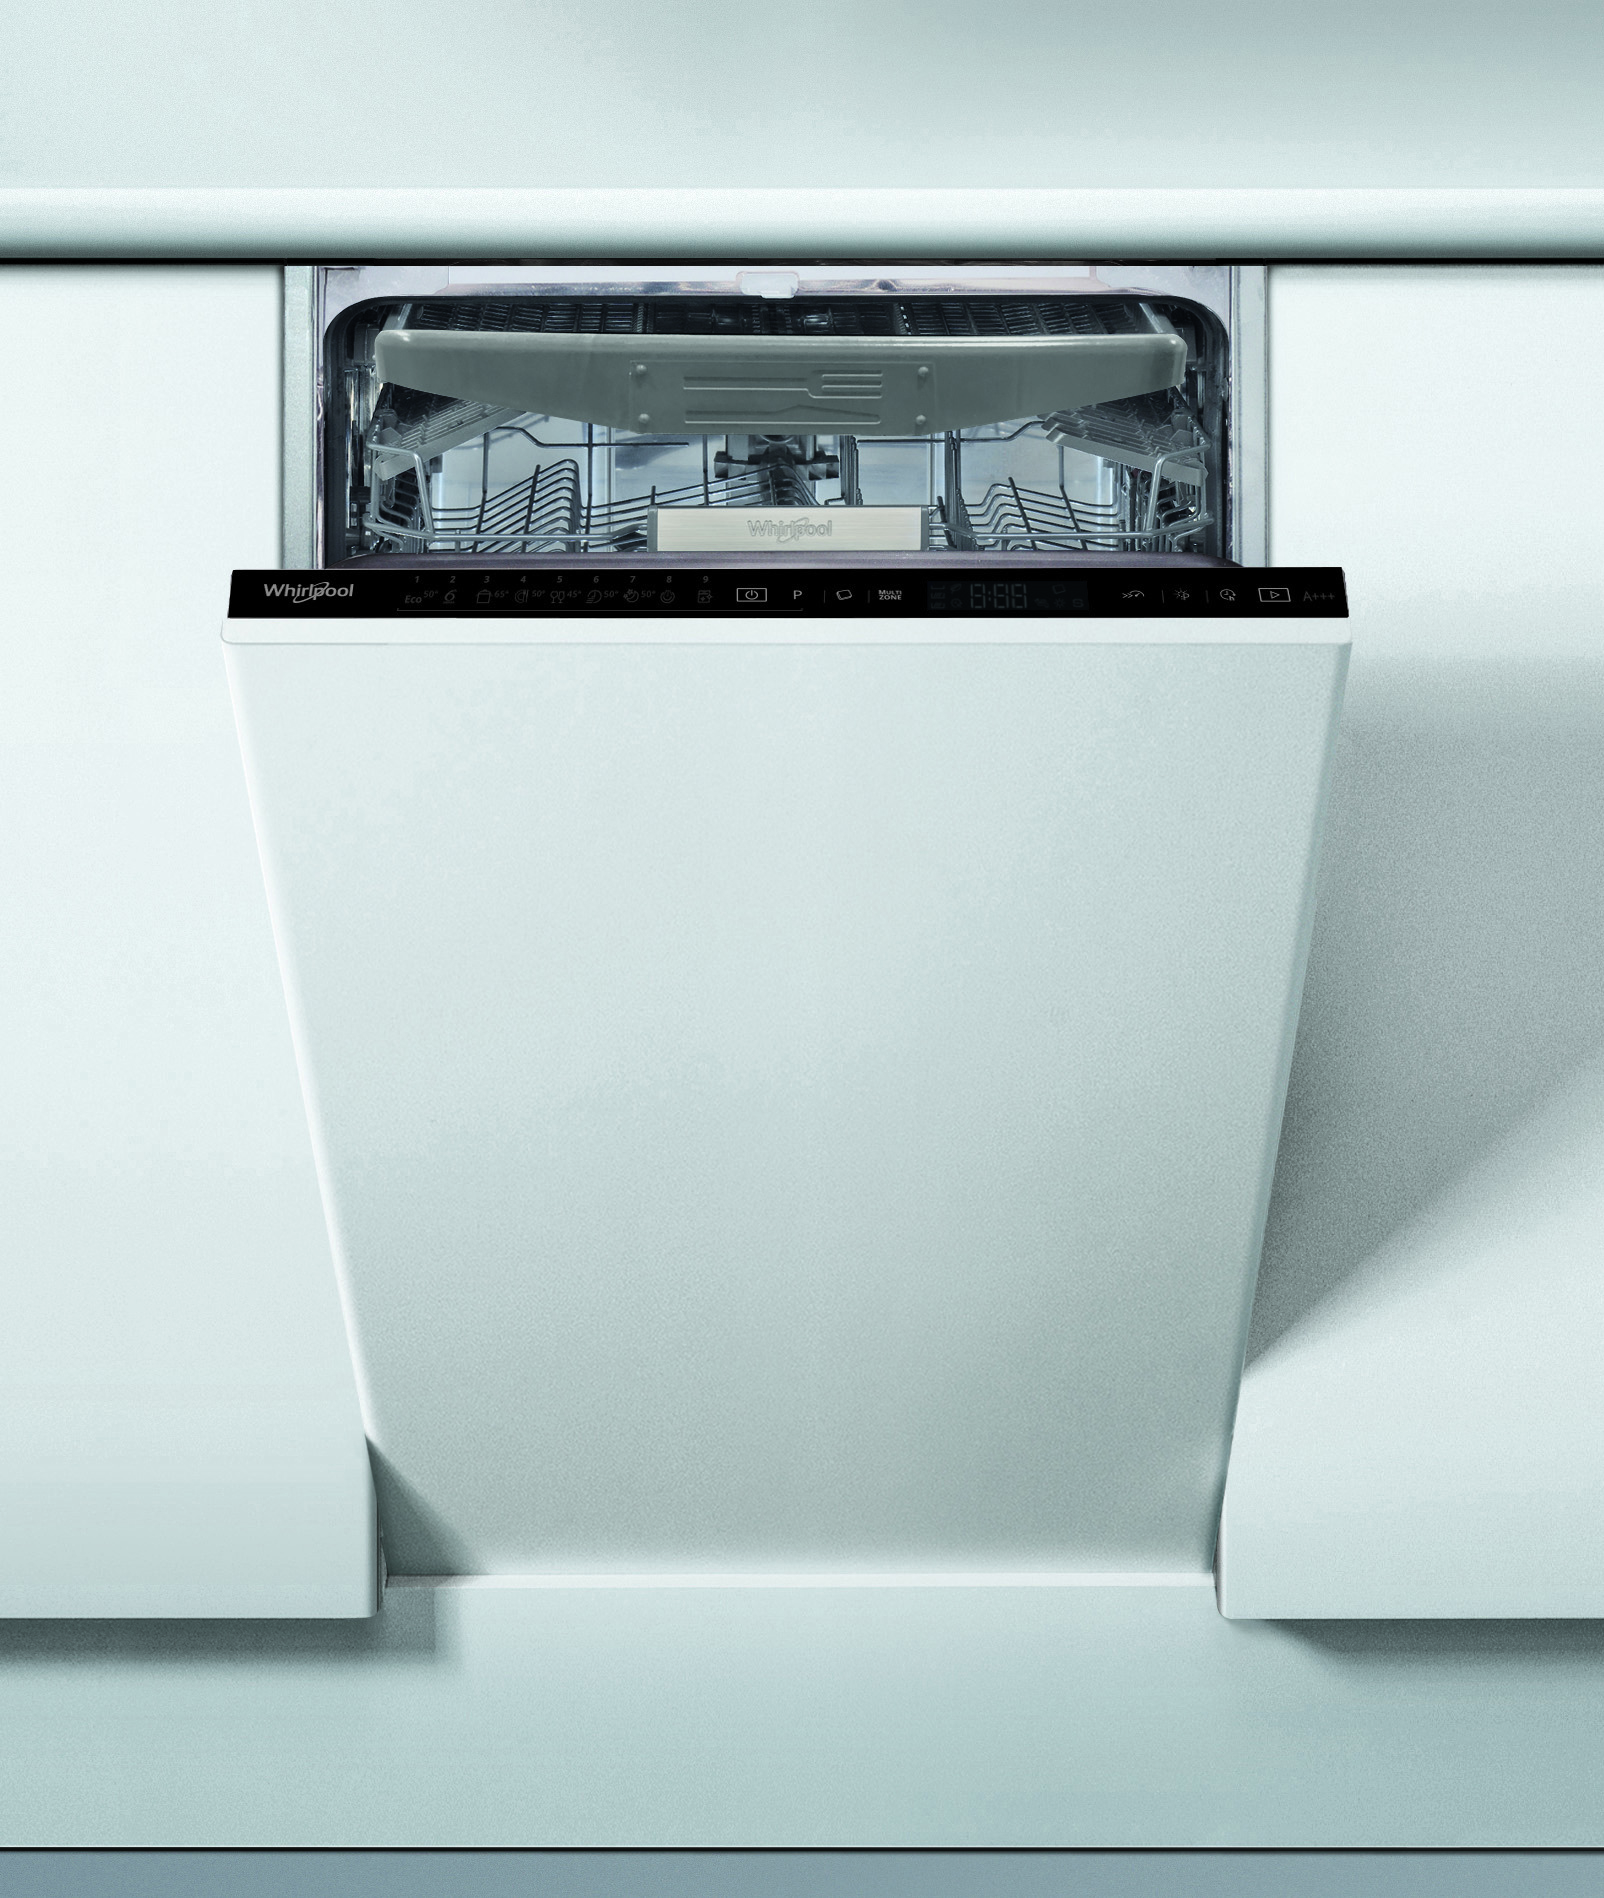 Whirlpool W Collection Supreme Clean Slim Size Dishwasher